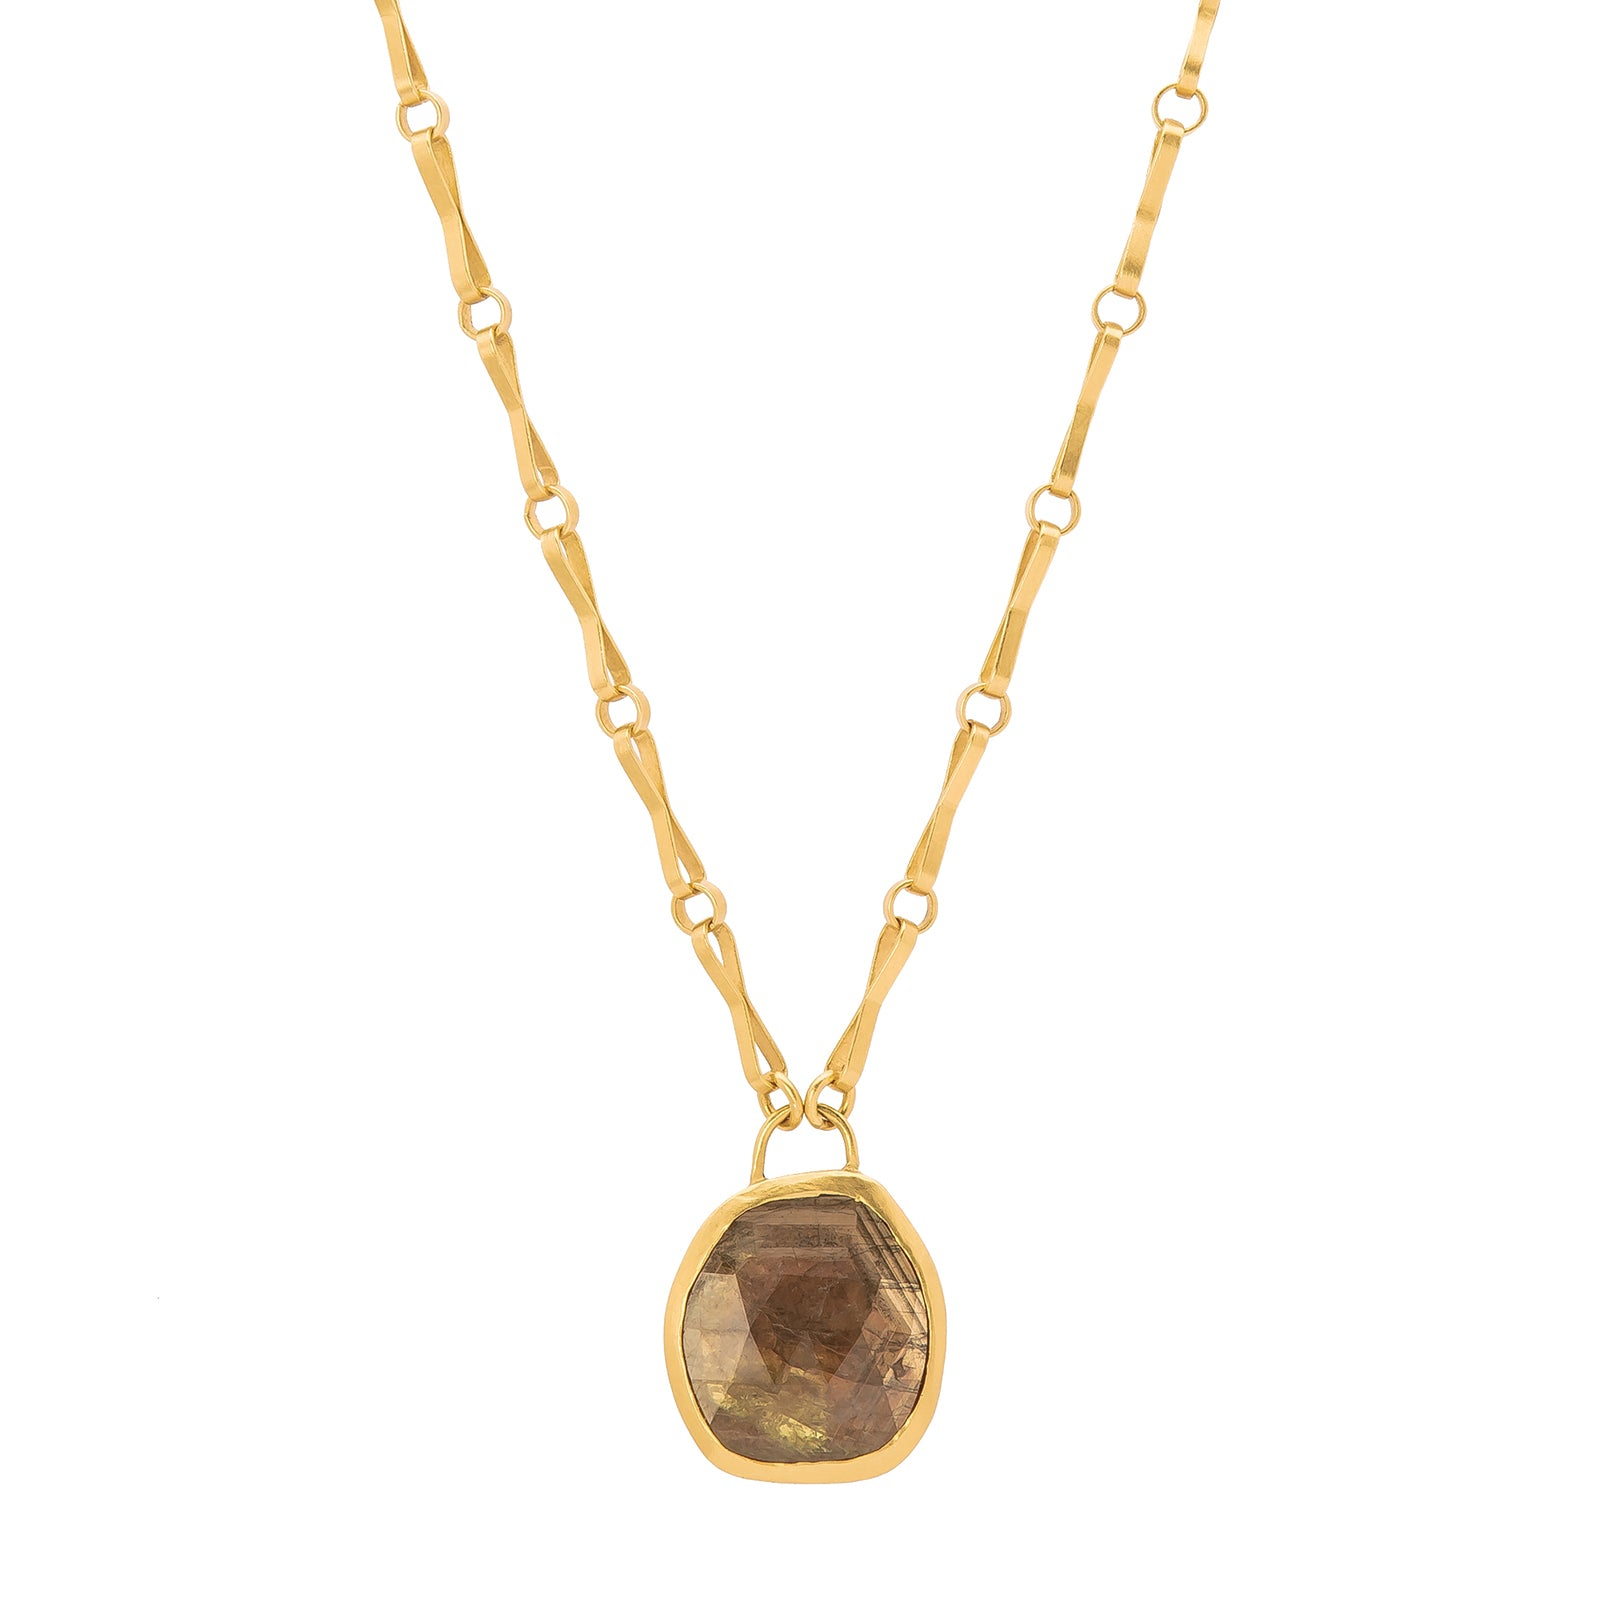 Eli Halili Pendant Necklace - Brown Sapphire - Necklaces - Broken English Jewelry